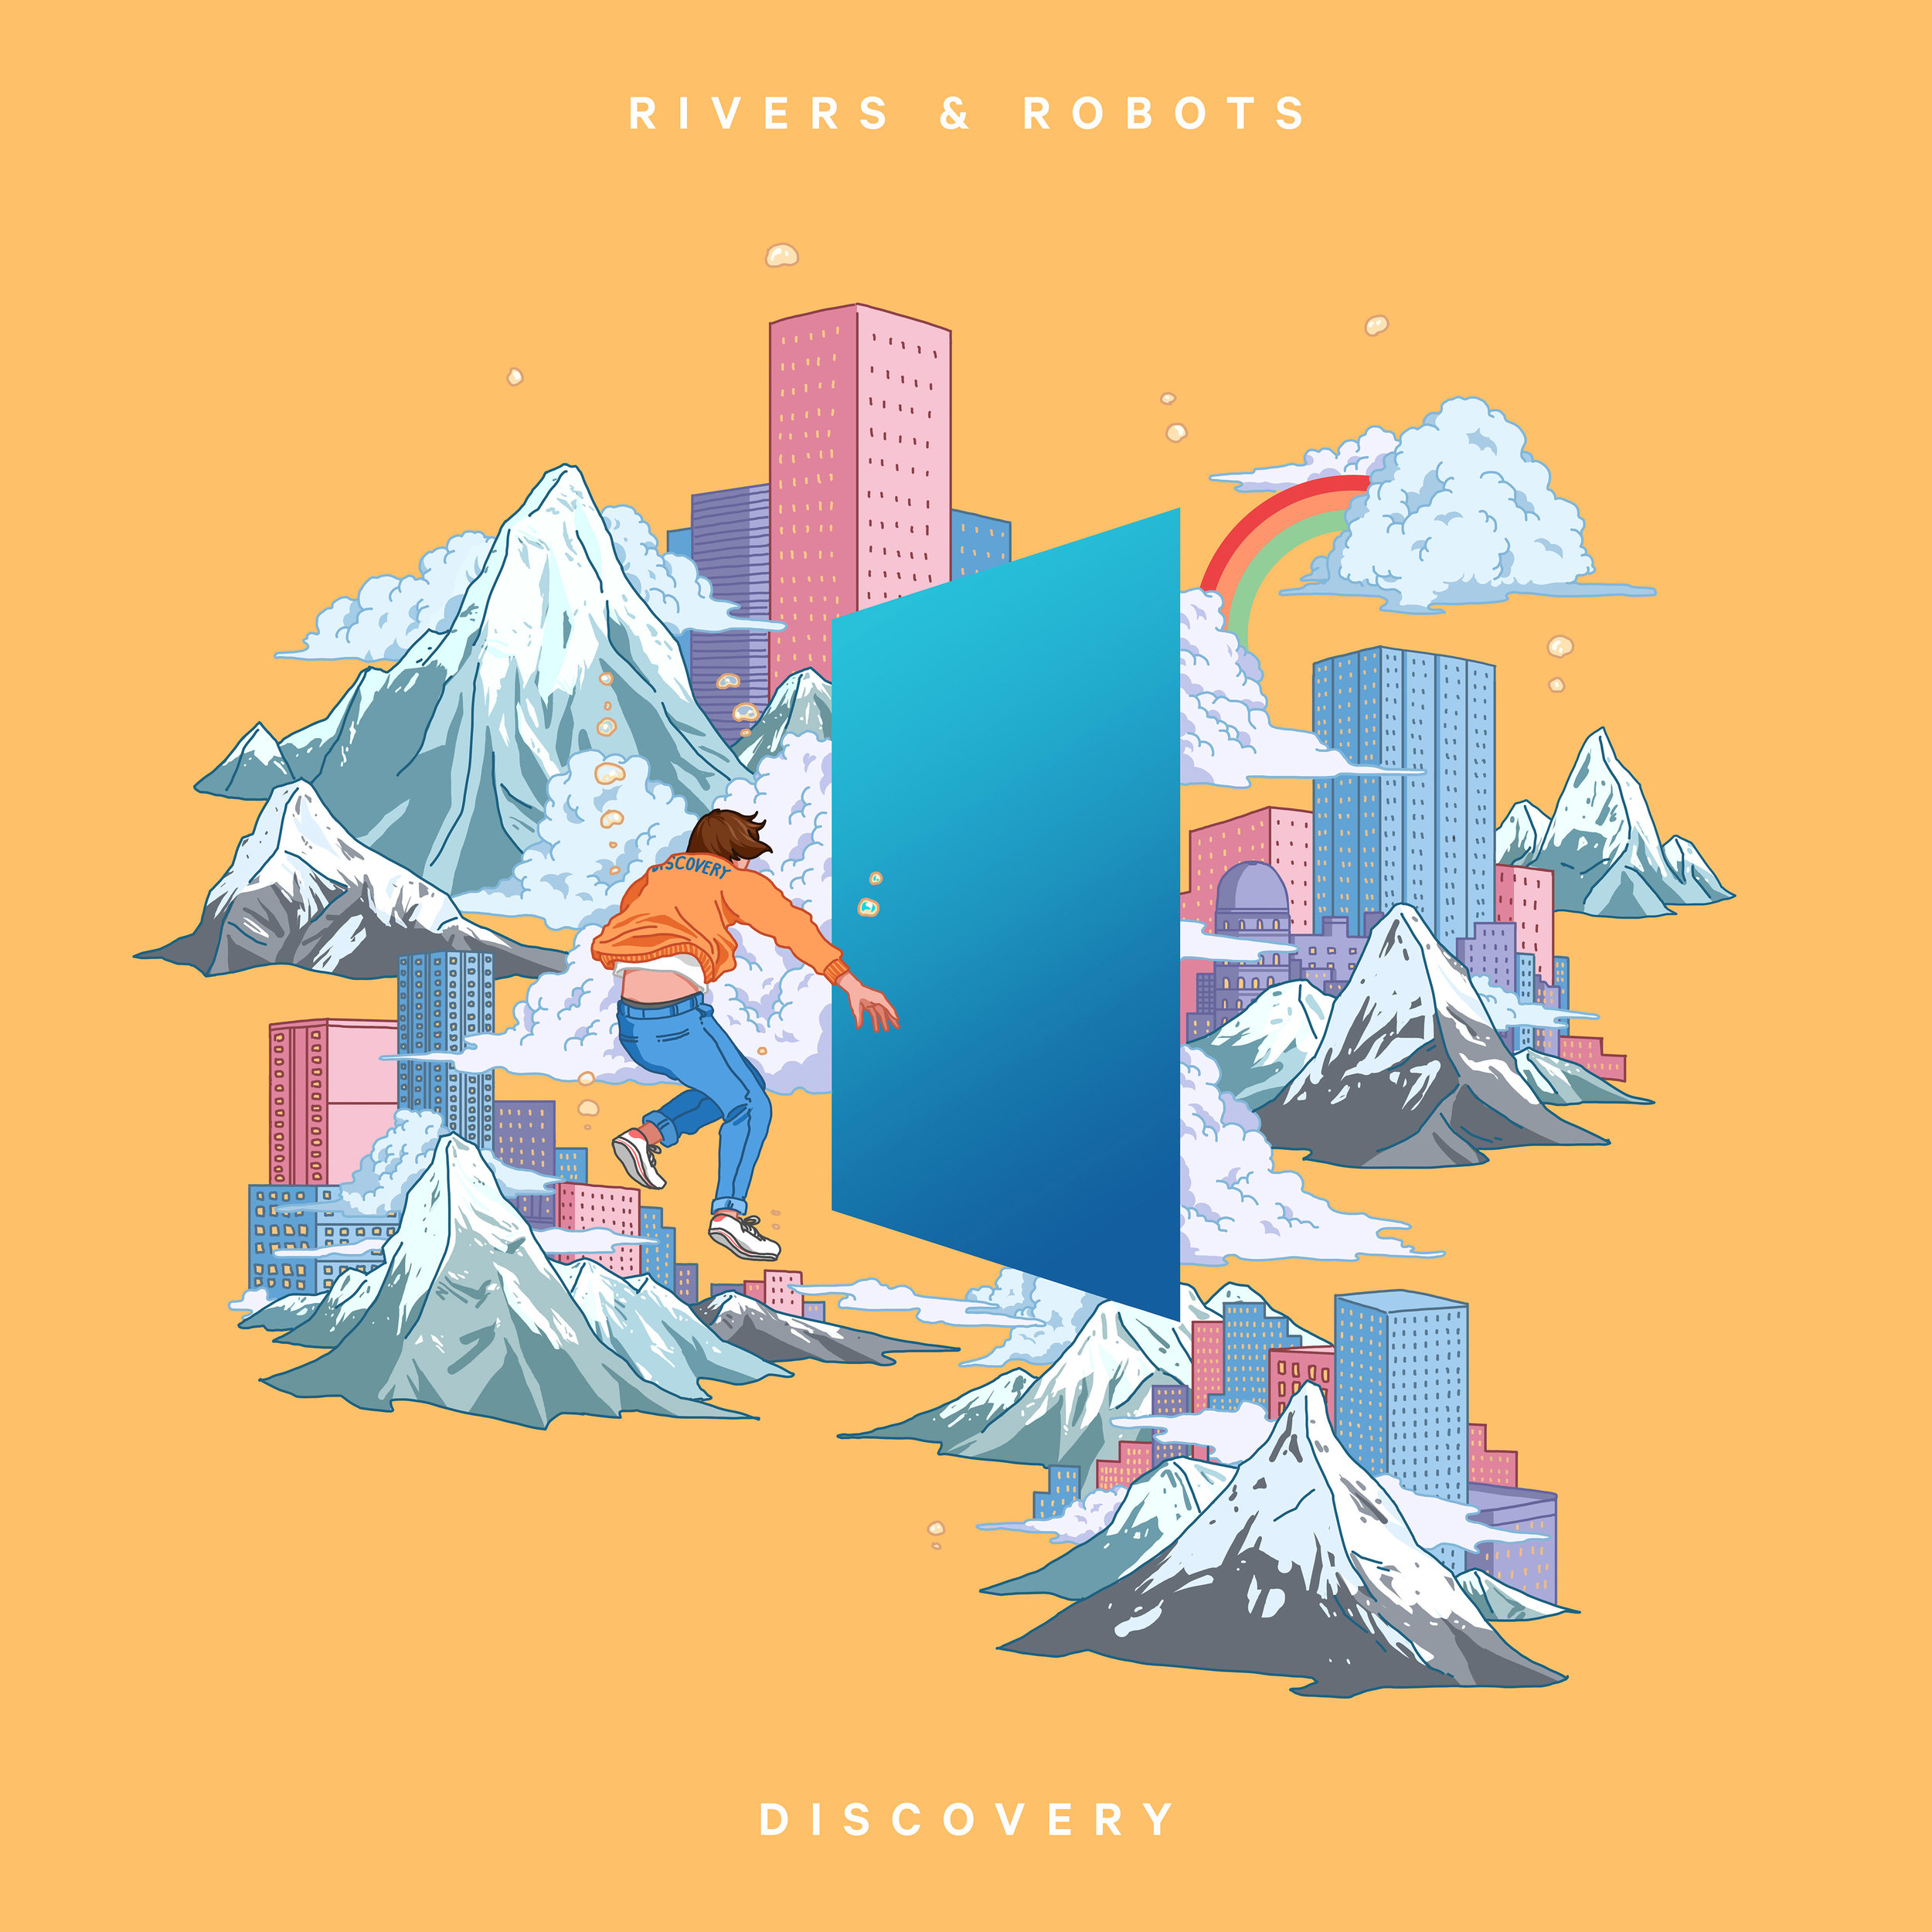 DISCOVERY  The new album from Rivers & Robots. Releasing  September 14 2018